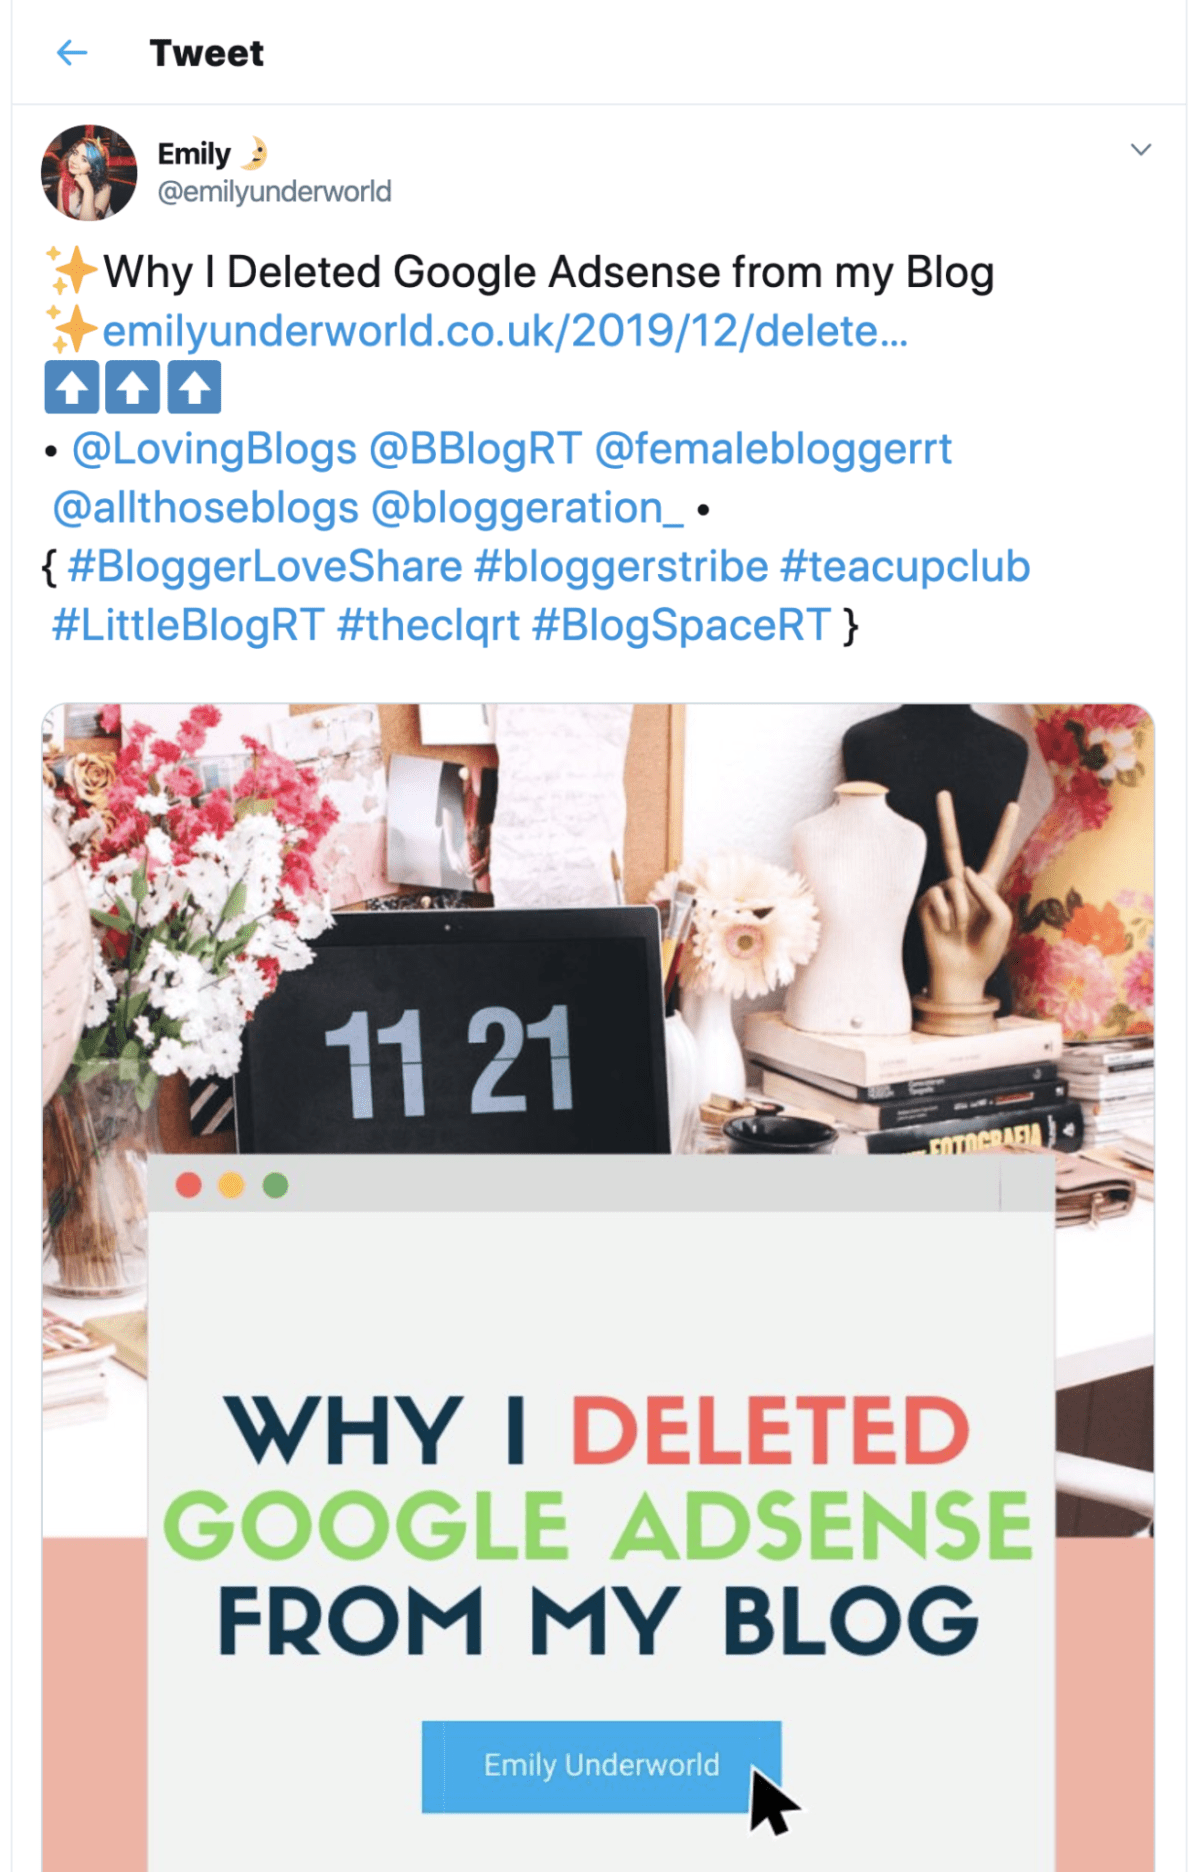 Twitter Retweet Accounts and Hashtags For Bloggers